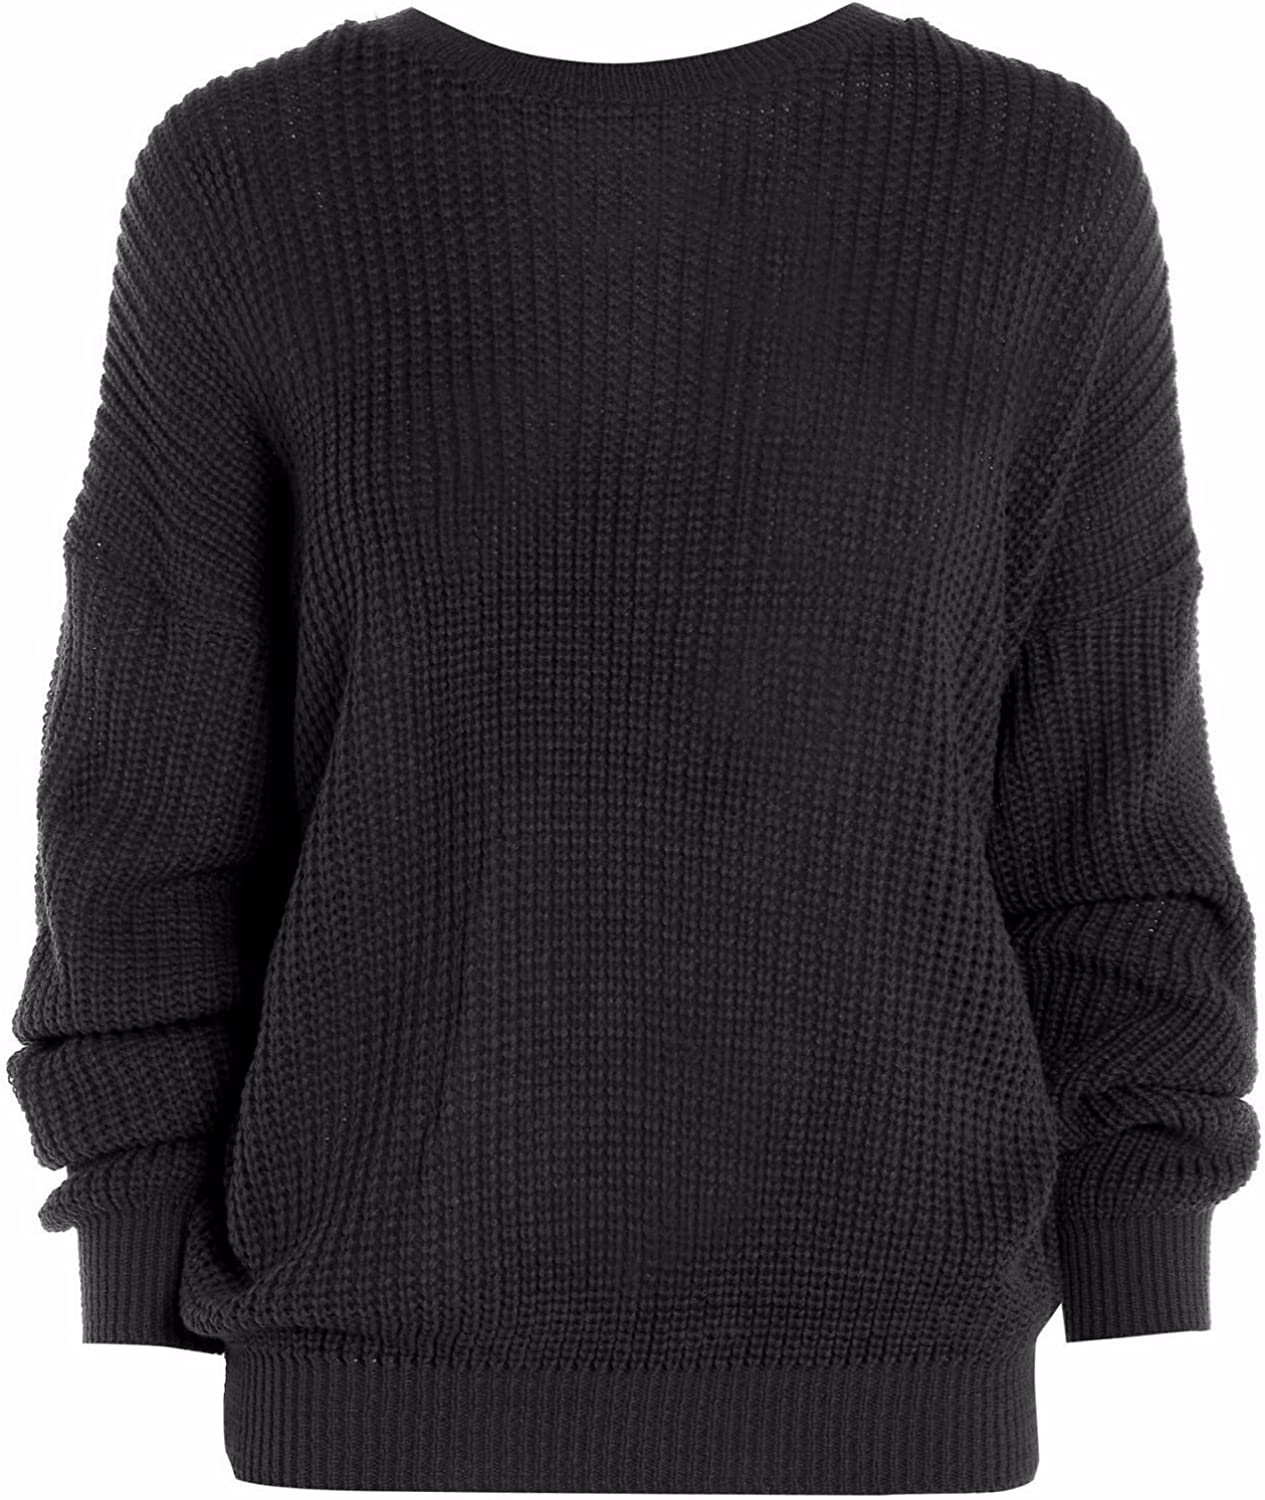 PURL Womens Oversized Baggy Chunky Knitted Jumper Pullover